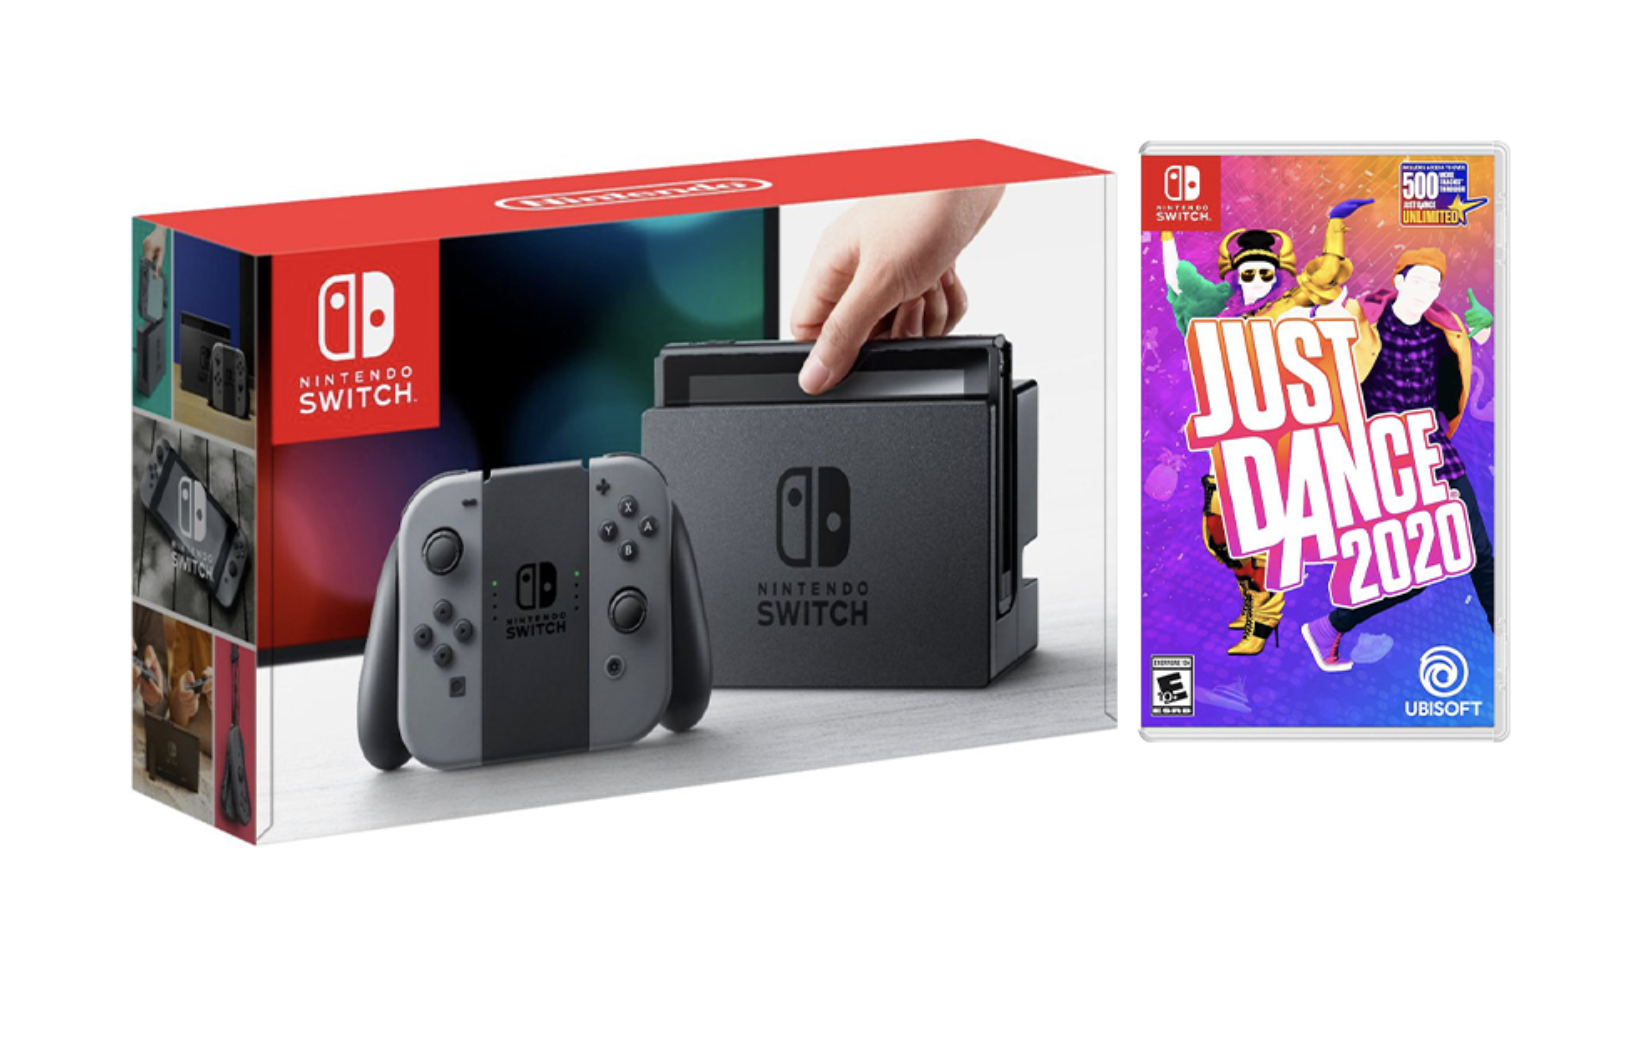 Nintendo Switch Gray Joy-Con Console Bundle with Just Dance 2020